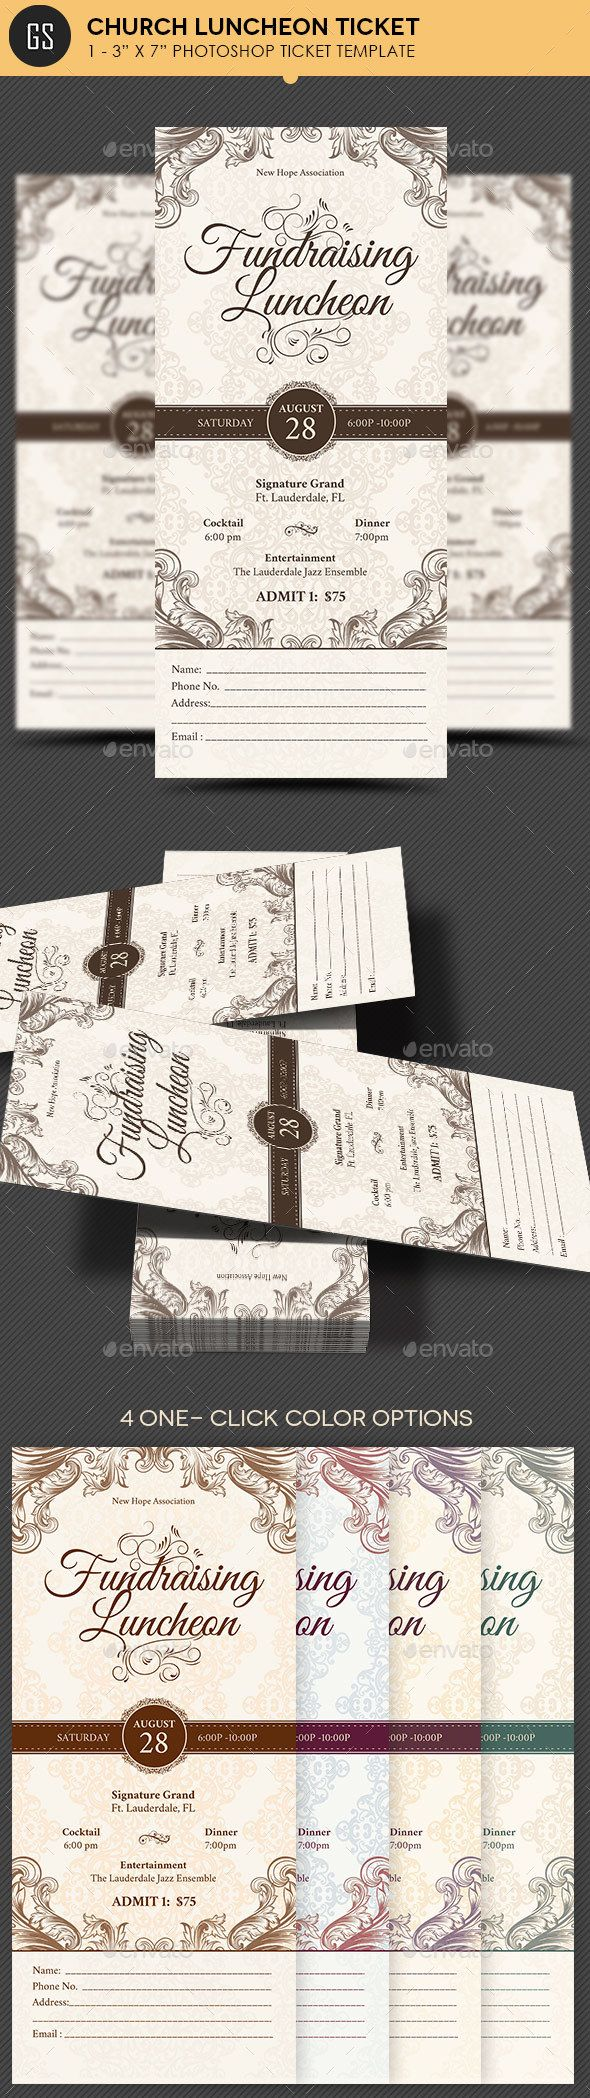 Church Luncheon Ticket Template PSD. Download here: https://graphicriver.net/item/church-luncheon-ticket-template-/17042015?ref=ksioks